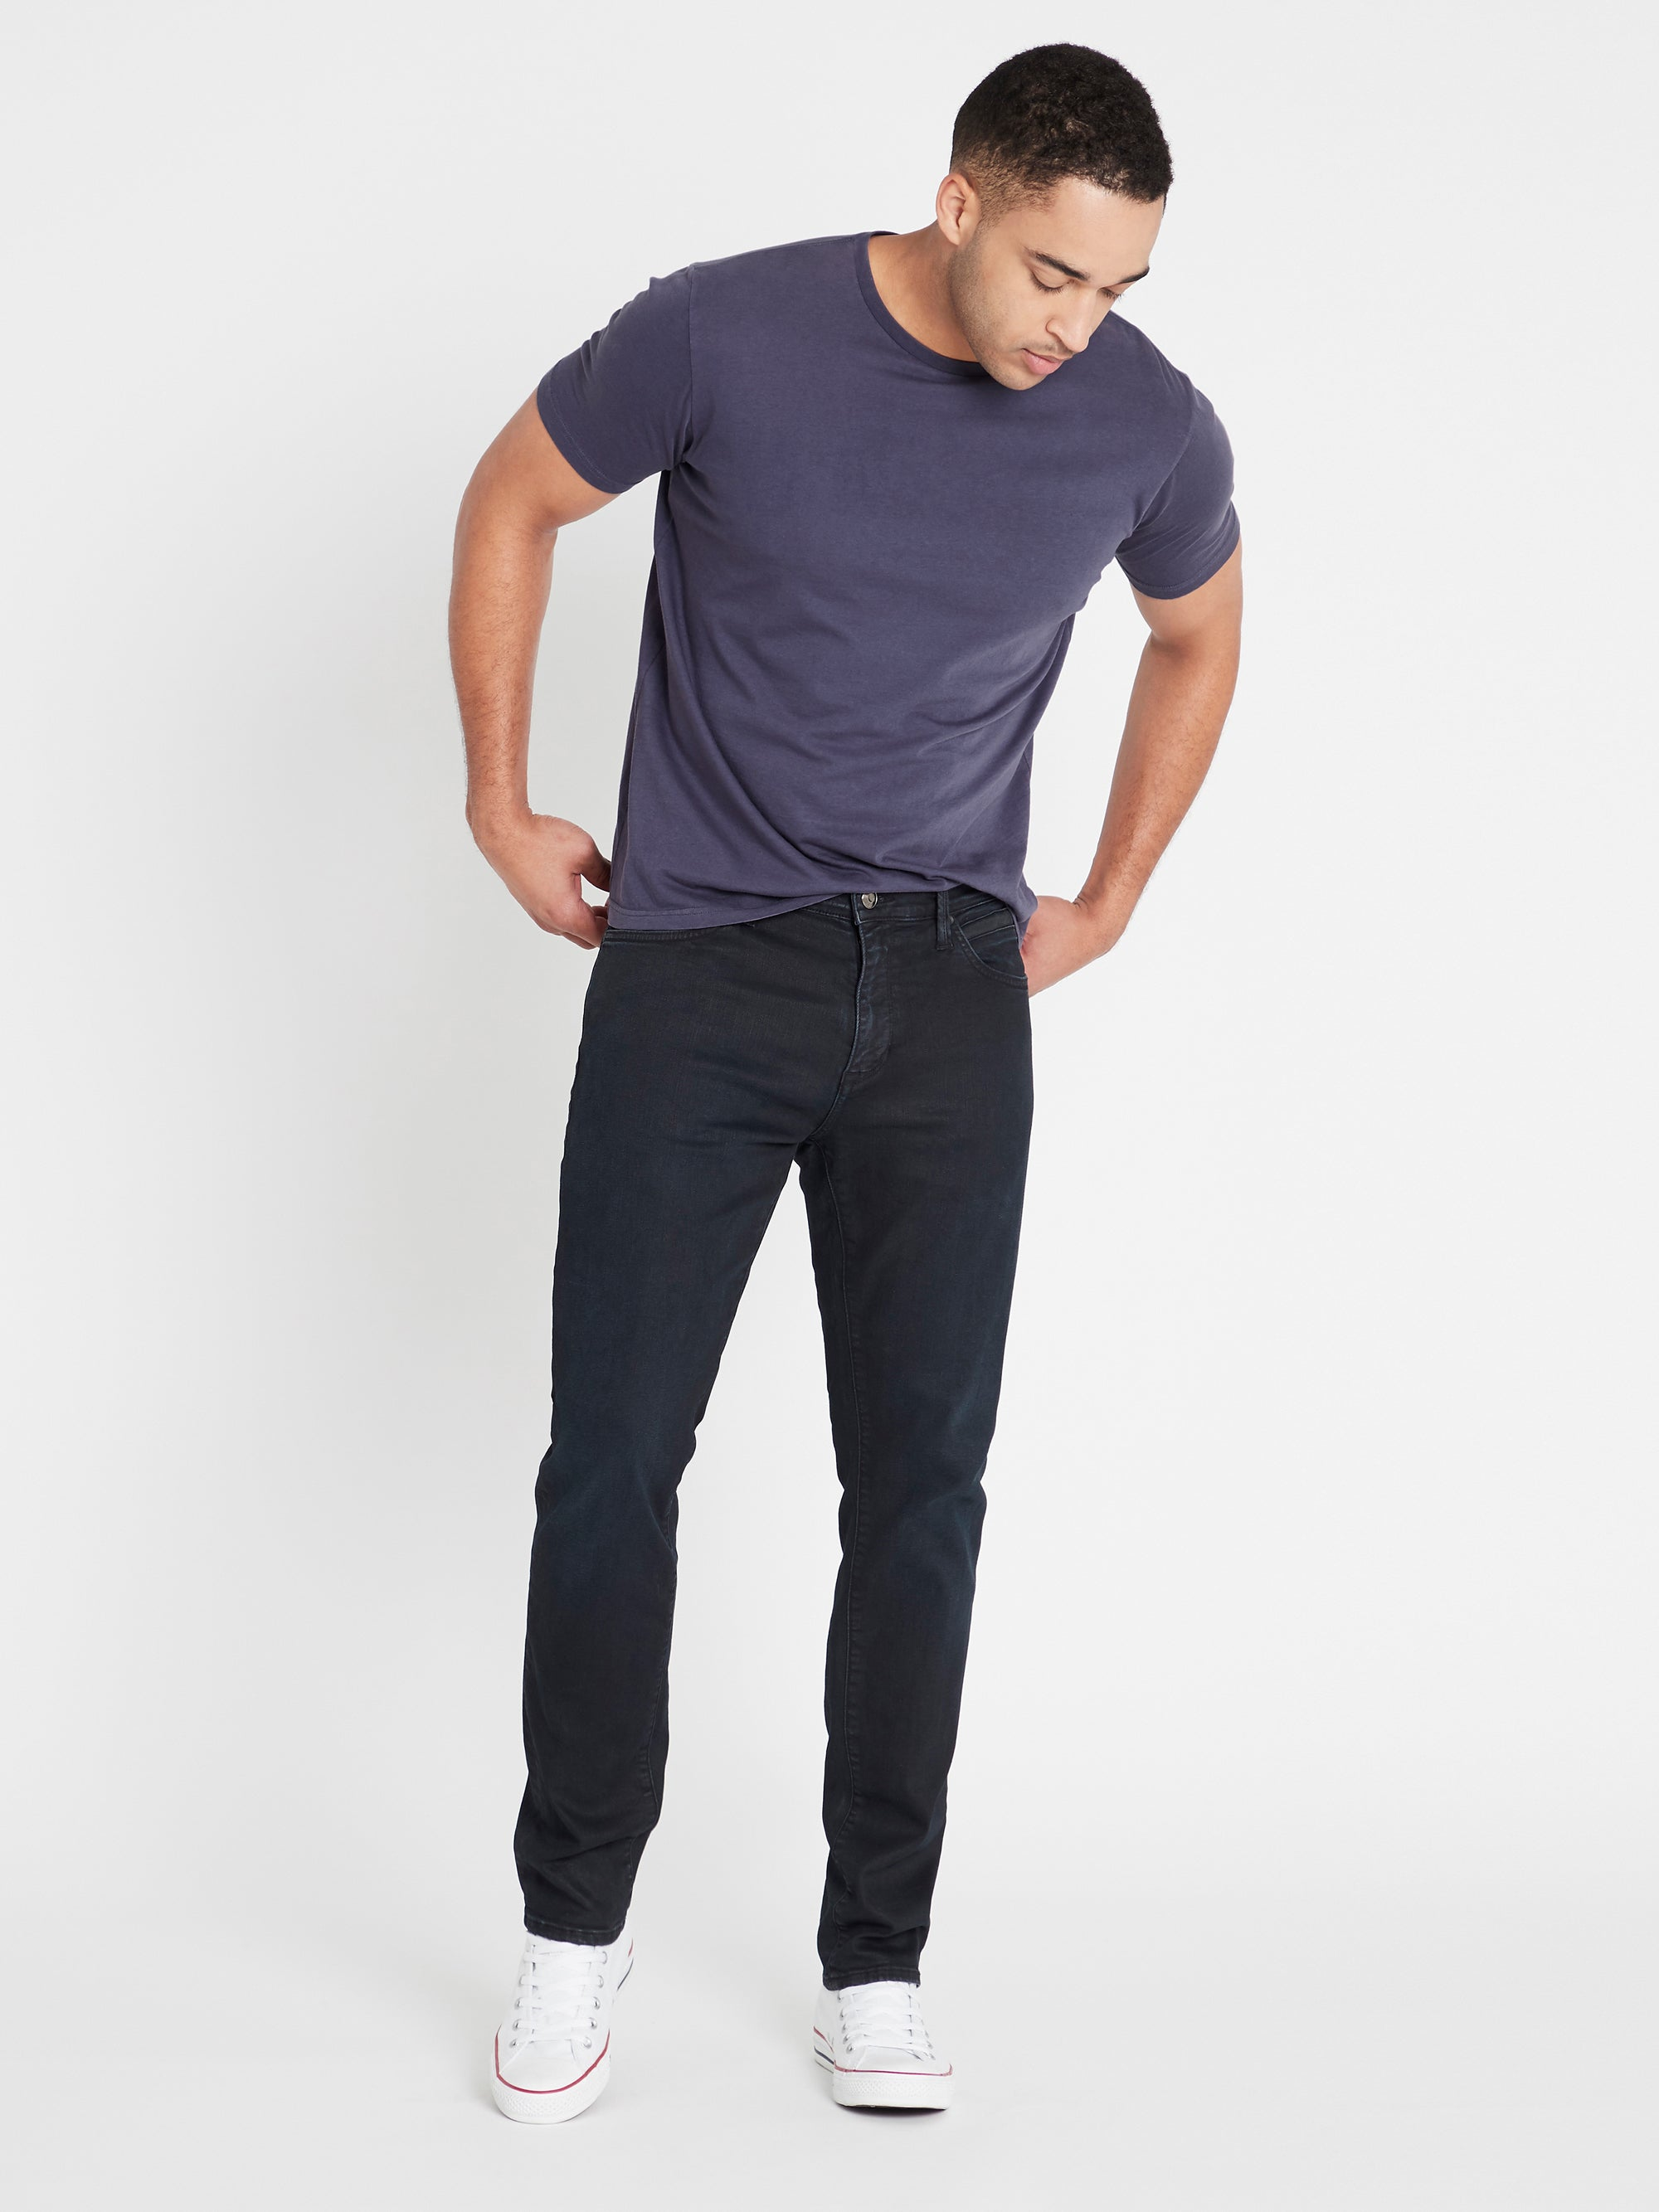 Yves Skinny Jeans in Ink Coated Mavi Jet Black